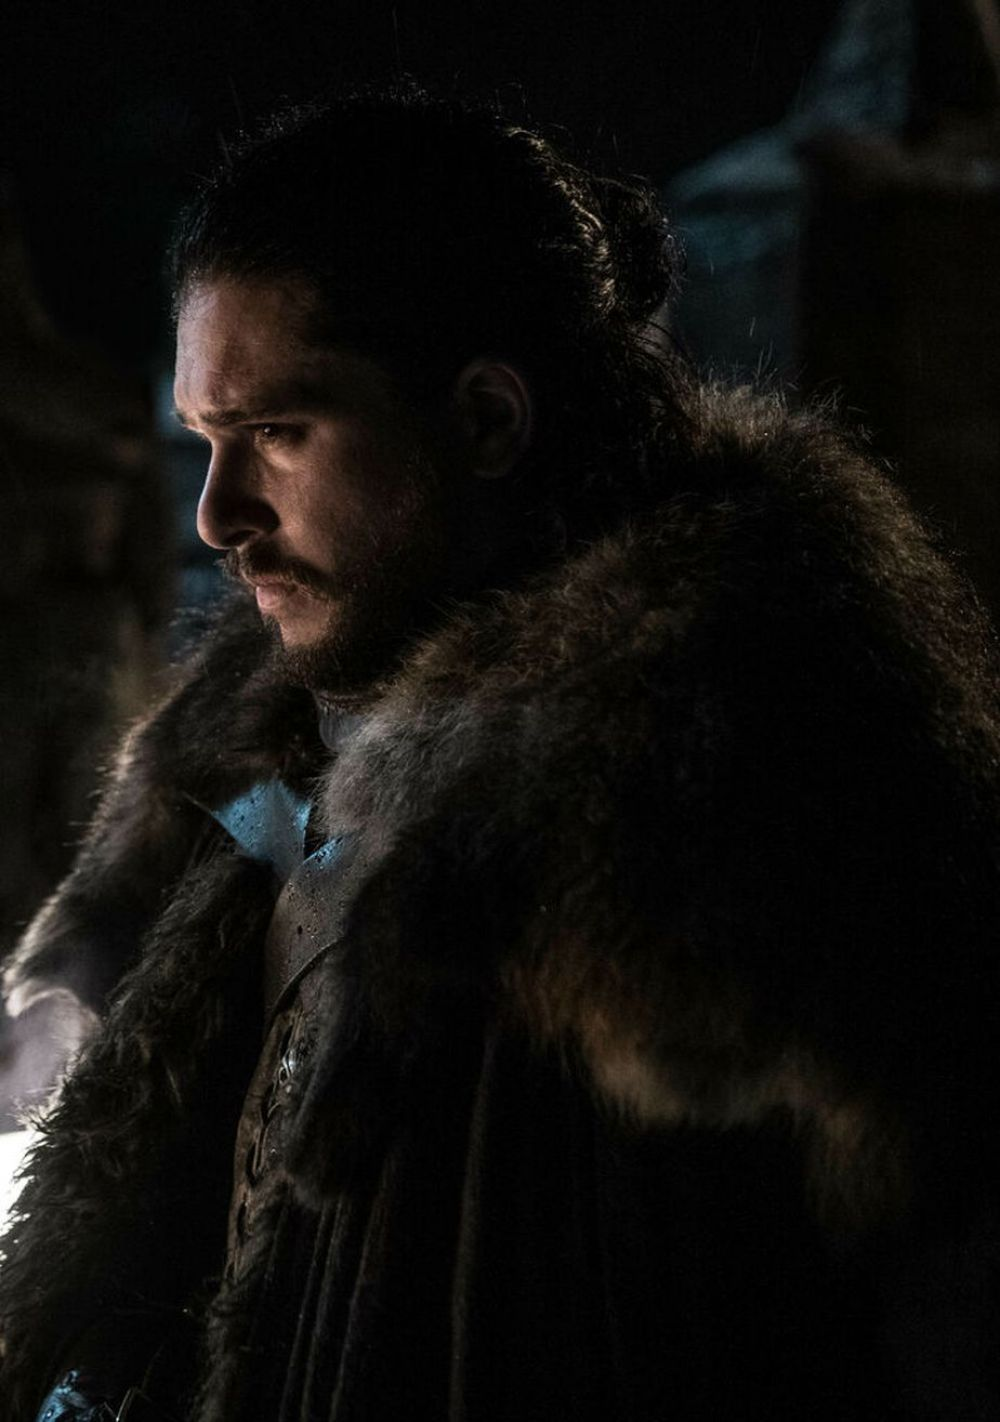 Fotos de la temporada 8 de Game of Thrones